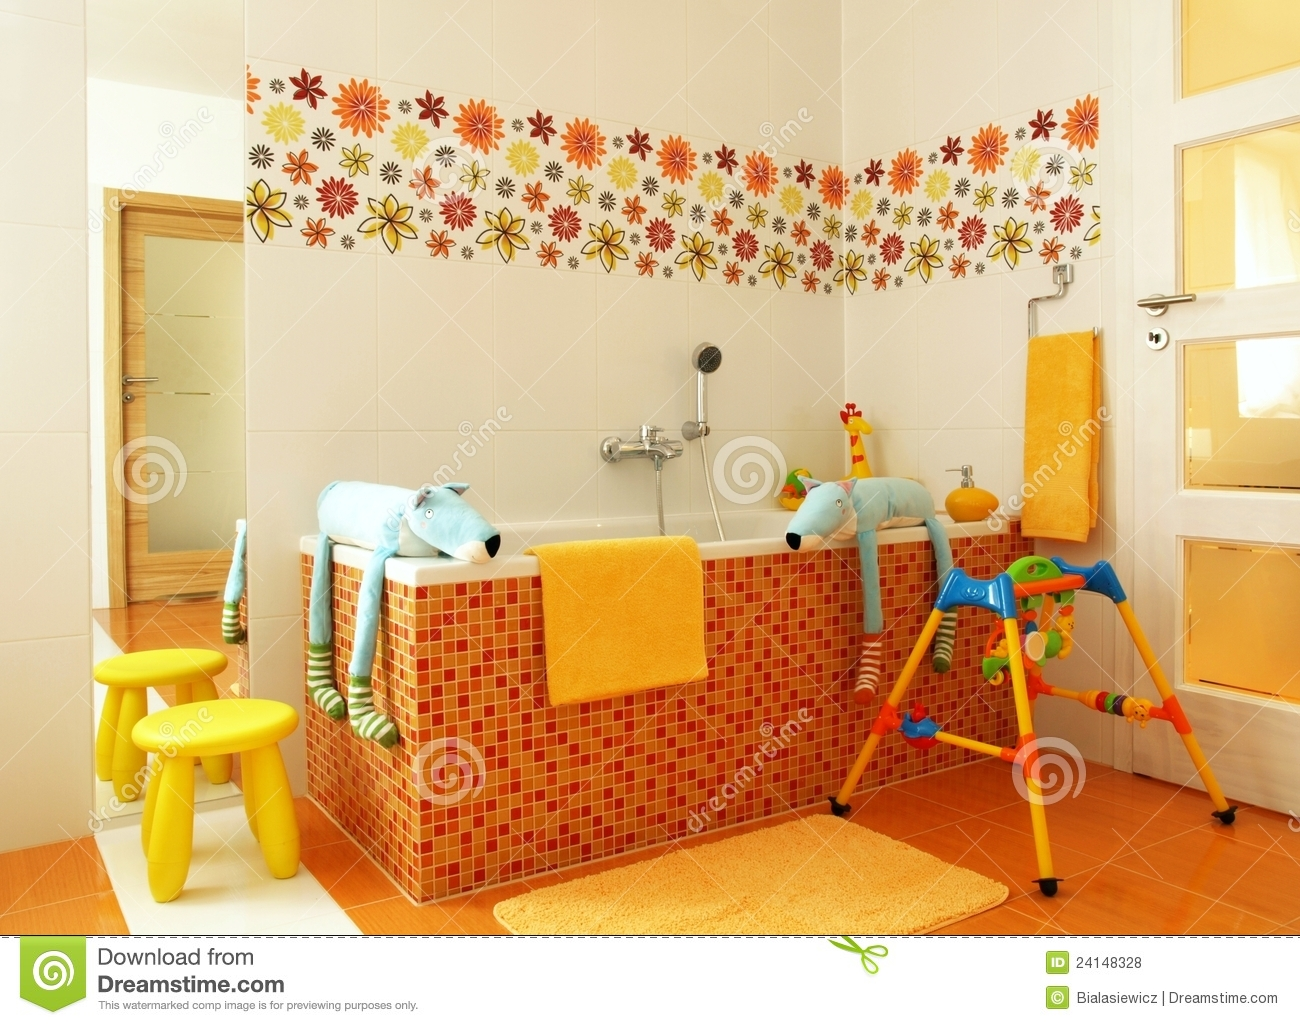 salle de bains moderne color e pour des enfants photo stock image du amusement bain 24148328. Black Bedroom Furniture Sets. Home Design Ideas